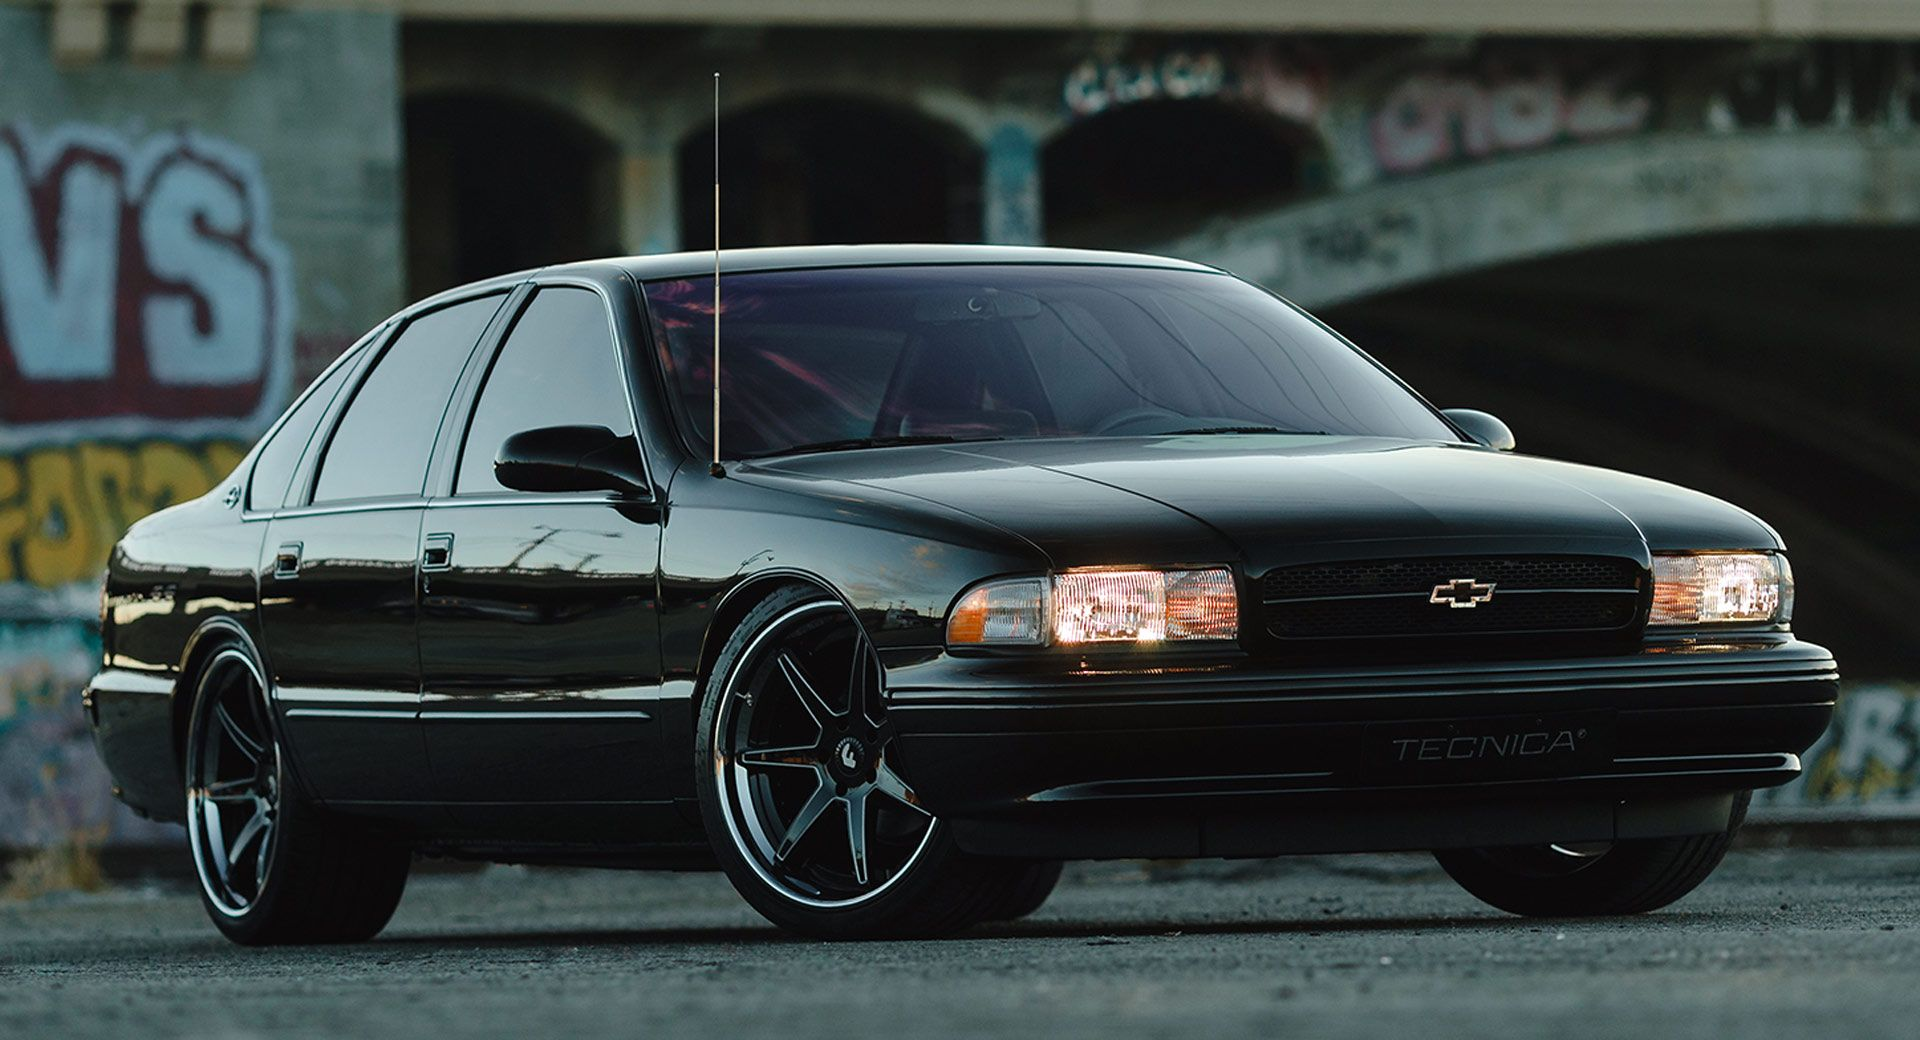 Chevy Muscle Cars >> This '96 Chevy Impala SS Gives Us Hope For The Future Of The American Muscle Sedan | Carscoops